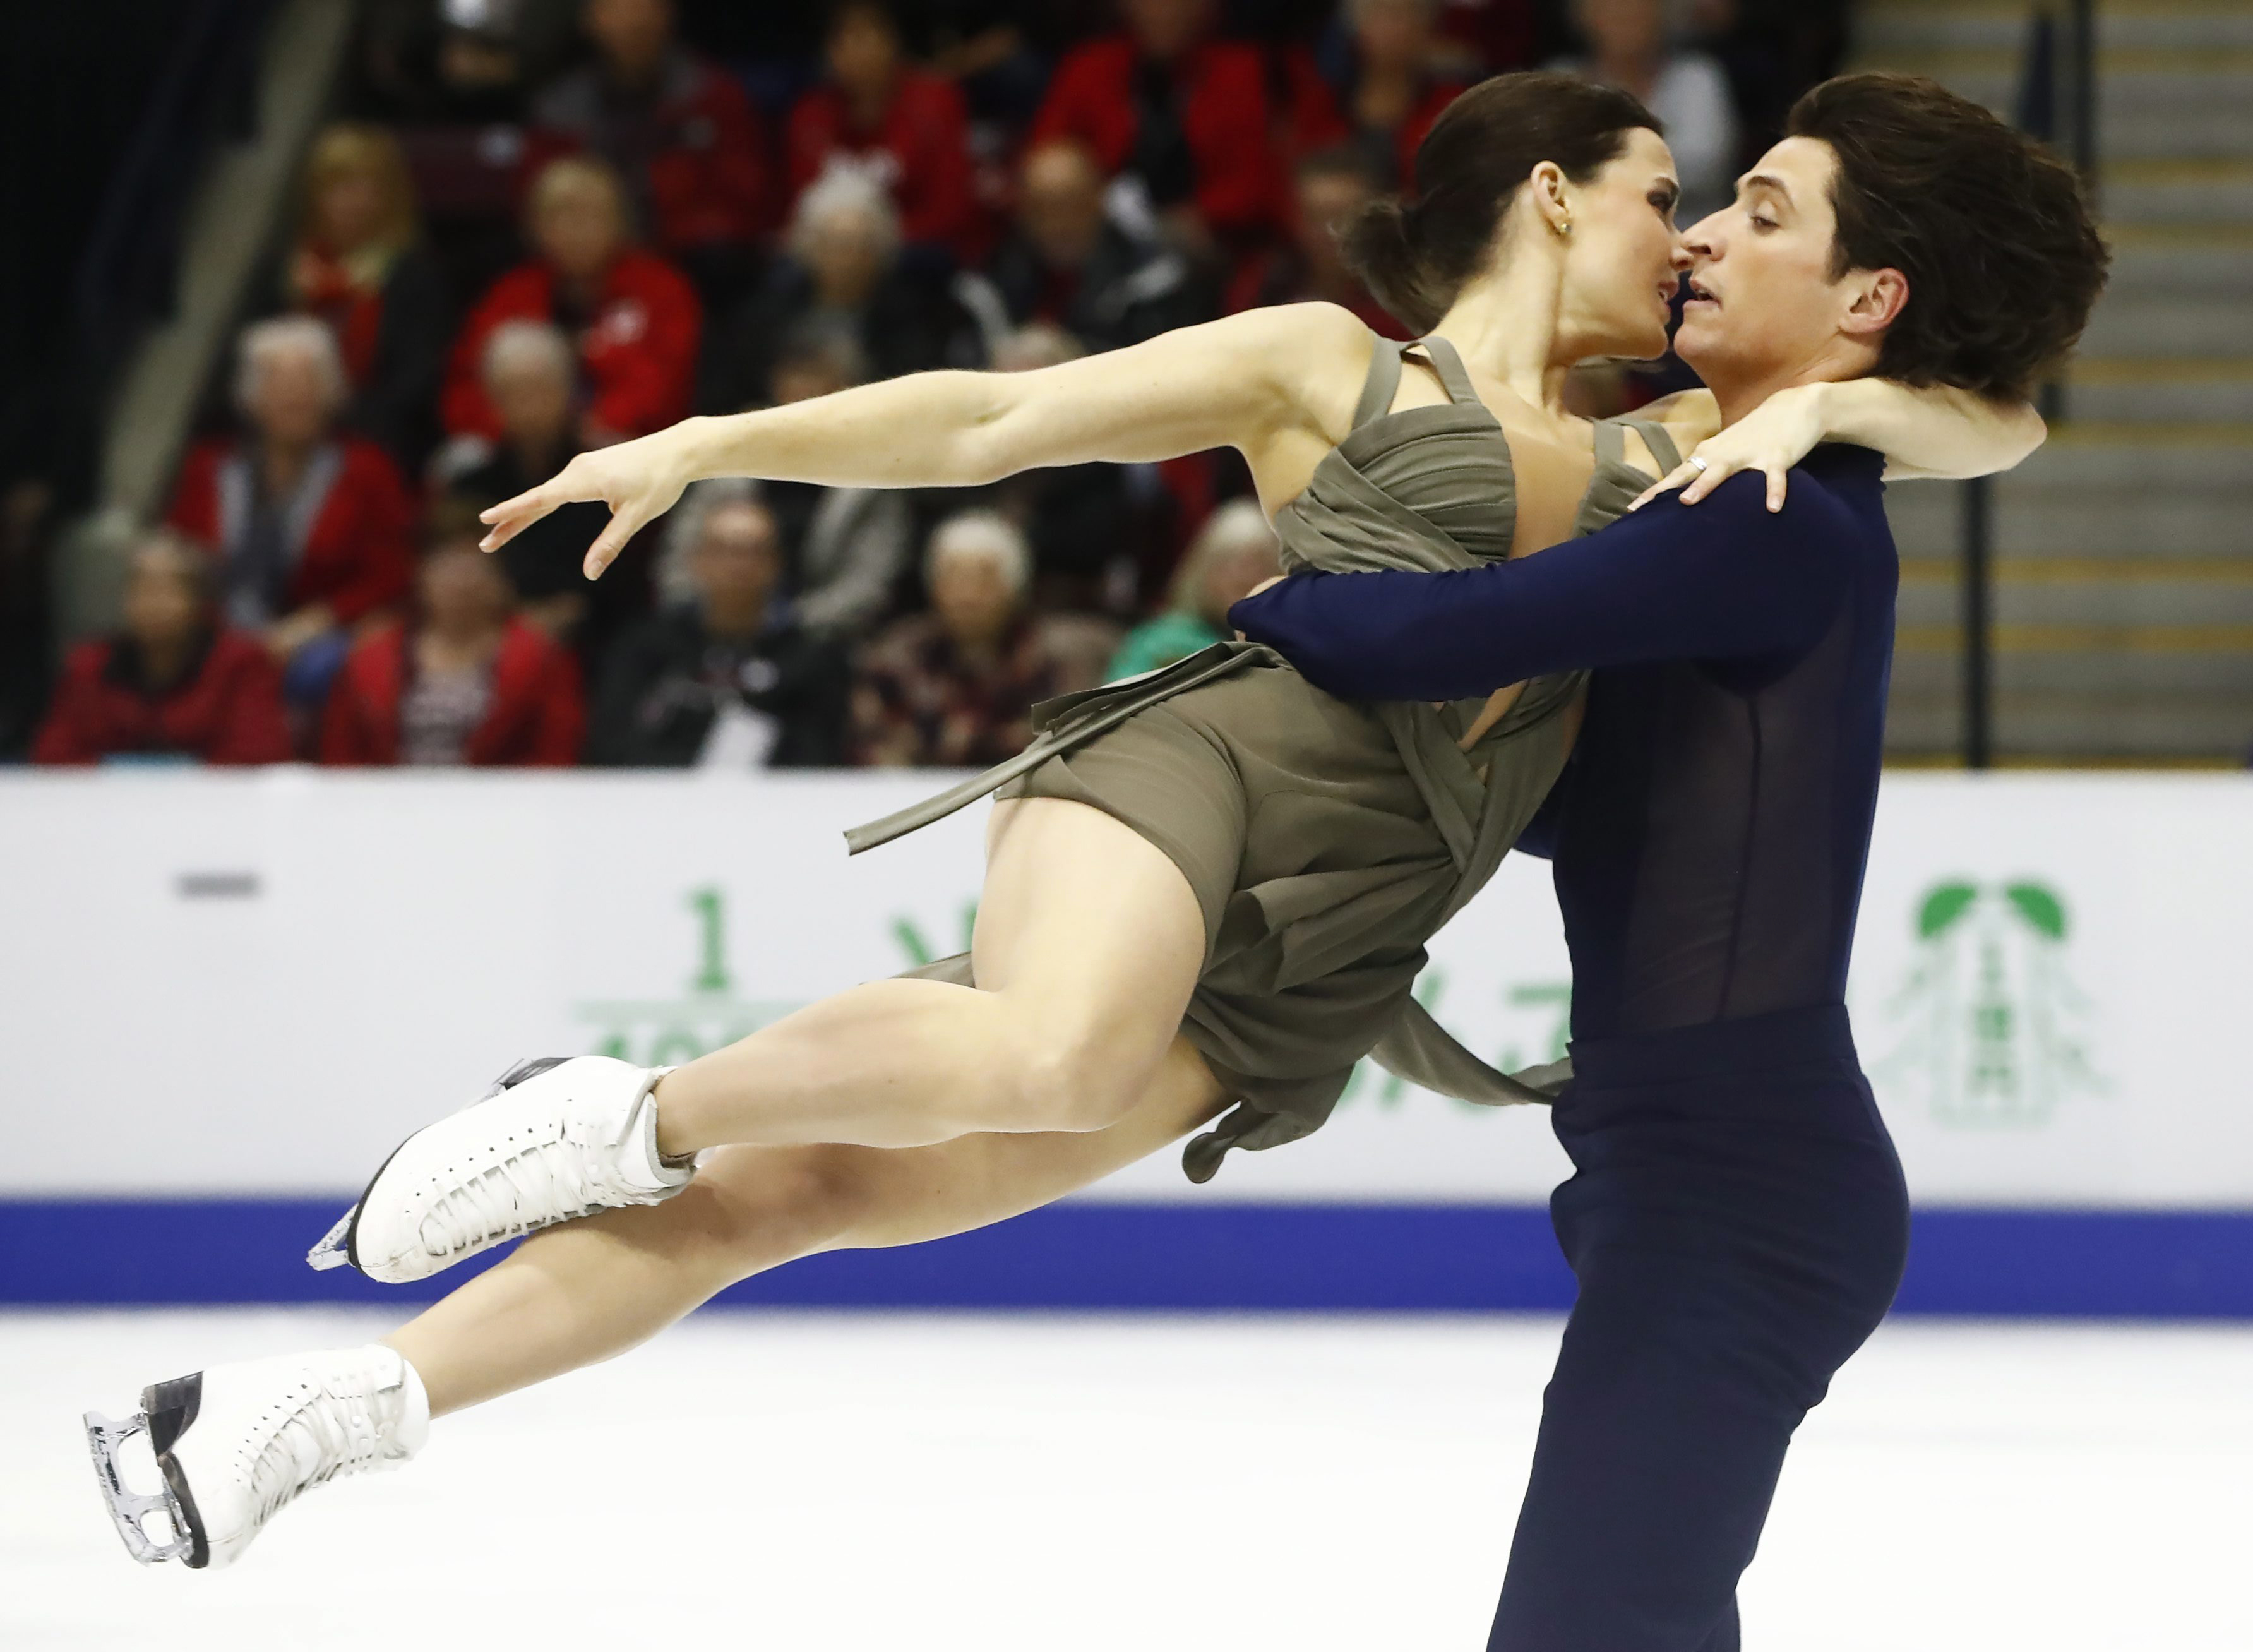 FILE - In this Oct. 29, 2016, file photo, Canada's Tessa Virtue and Scott Moir perform in the ice dance free skate during the Skate Canada figure skating event in Mississauga, Ontario, Canada. Virtue and Moir will compete in the Rostelecom Cup in Moscow t